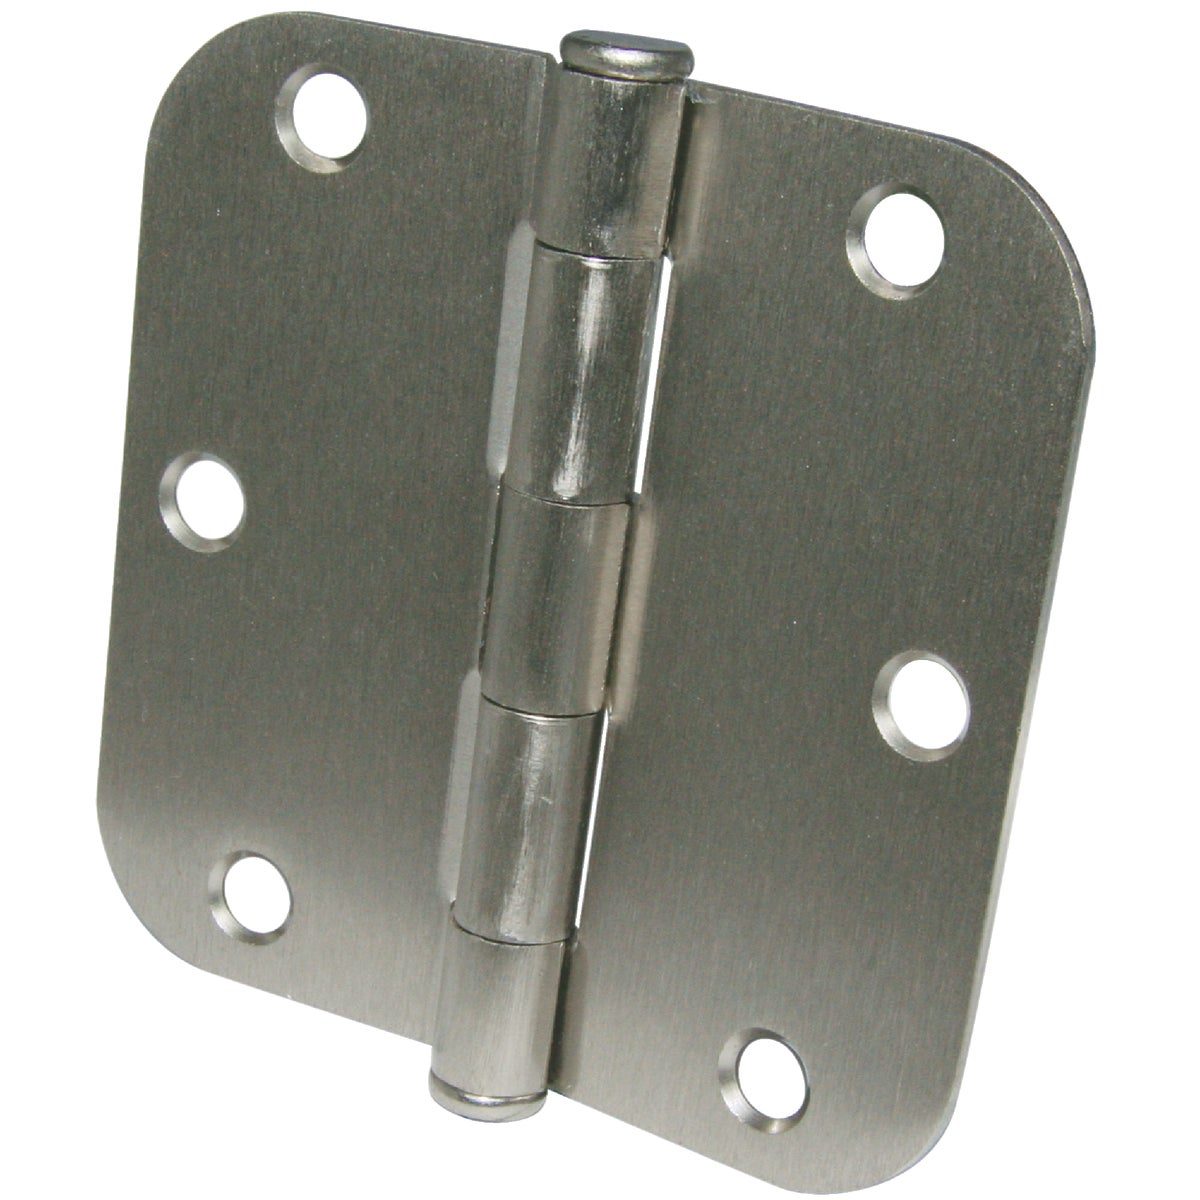 "3.5"" 5/8RAD SN 3PK HINGE - 61741 by Ultra Hardware"